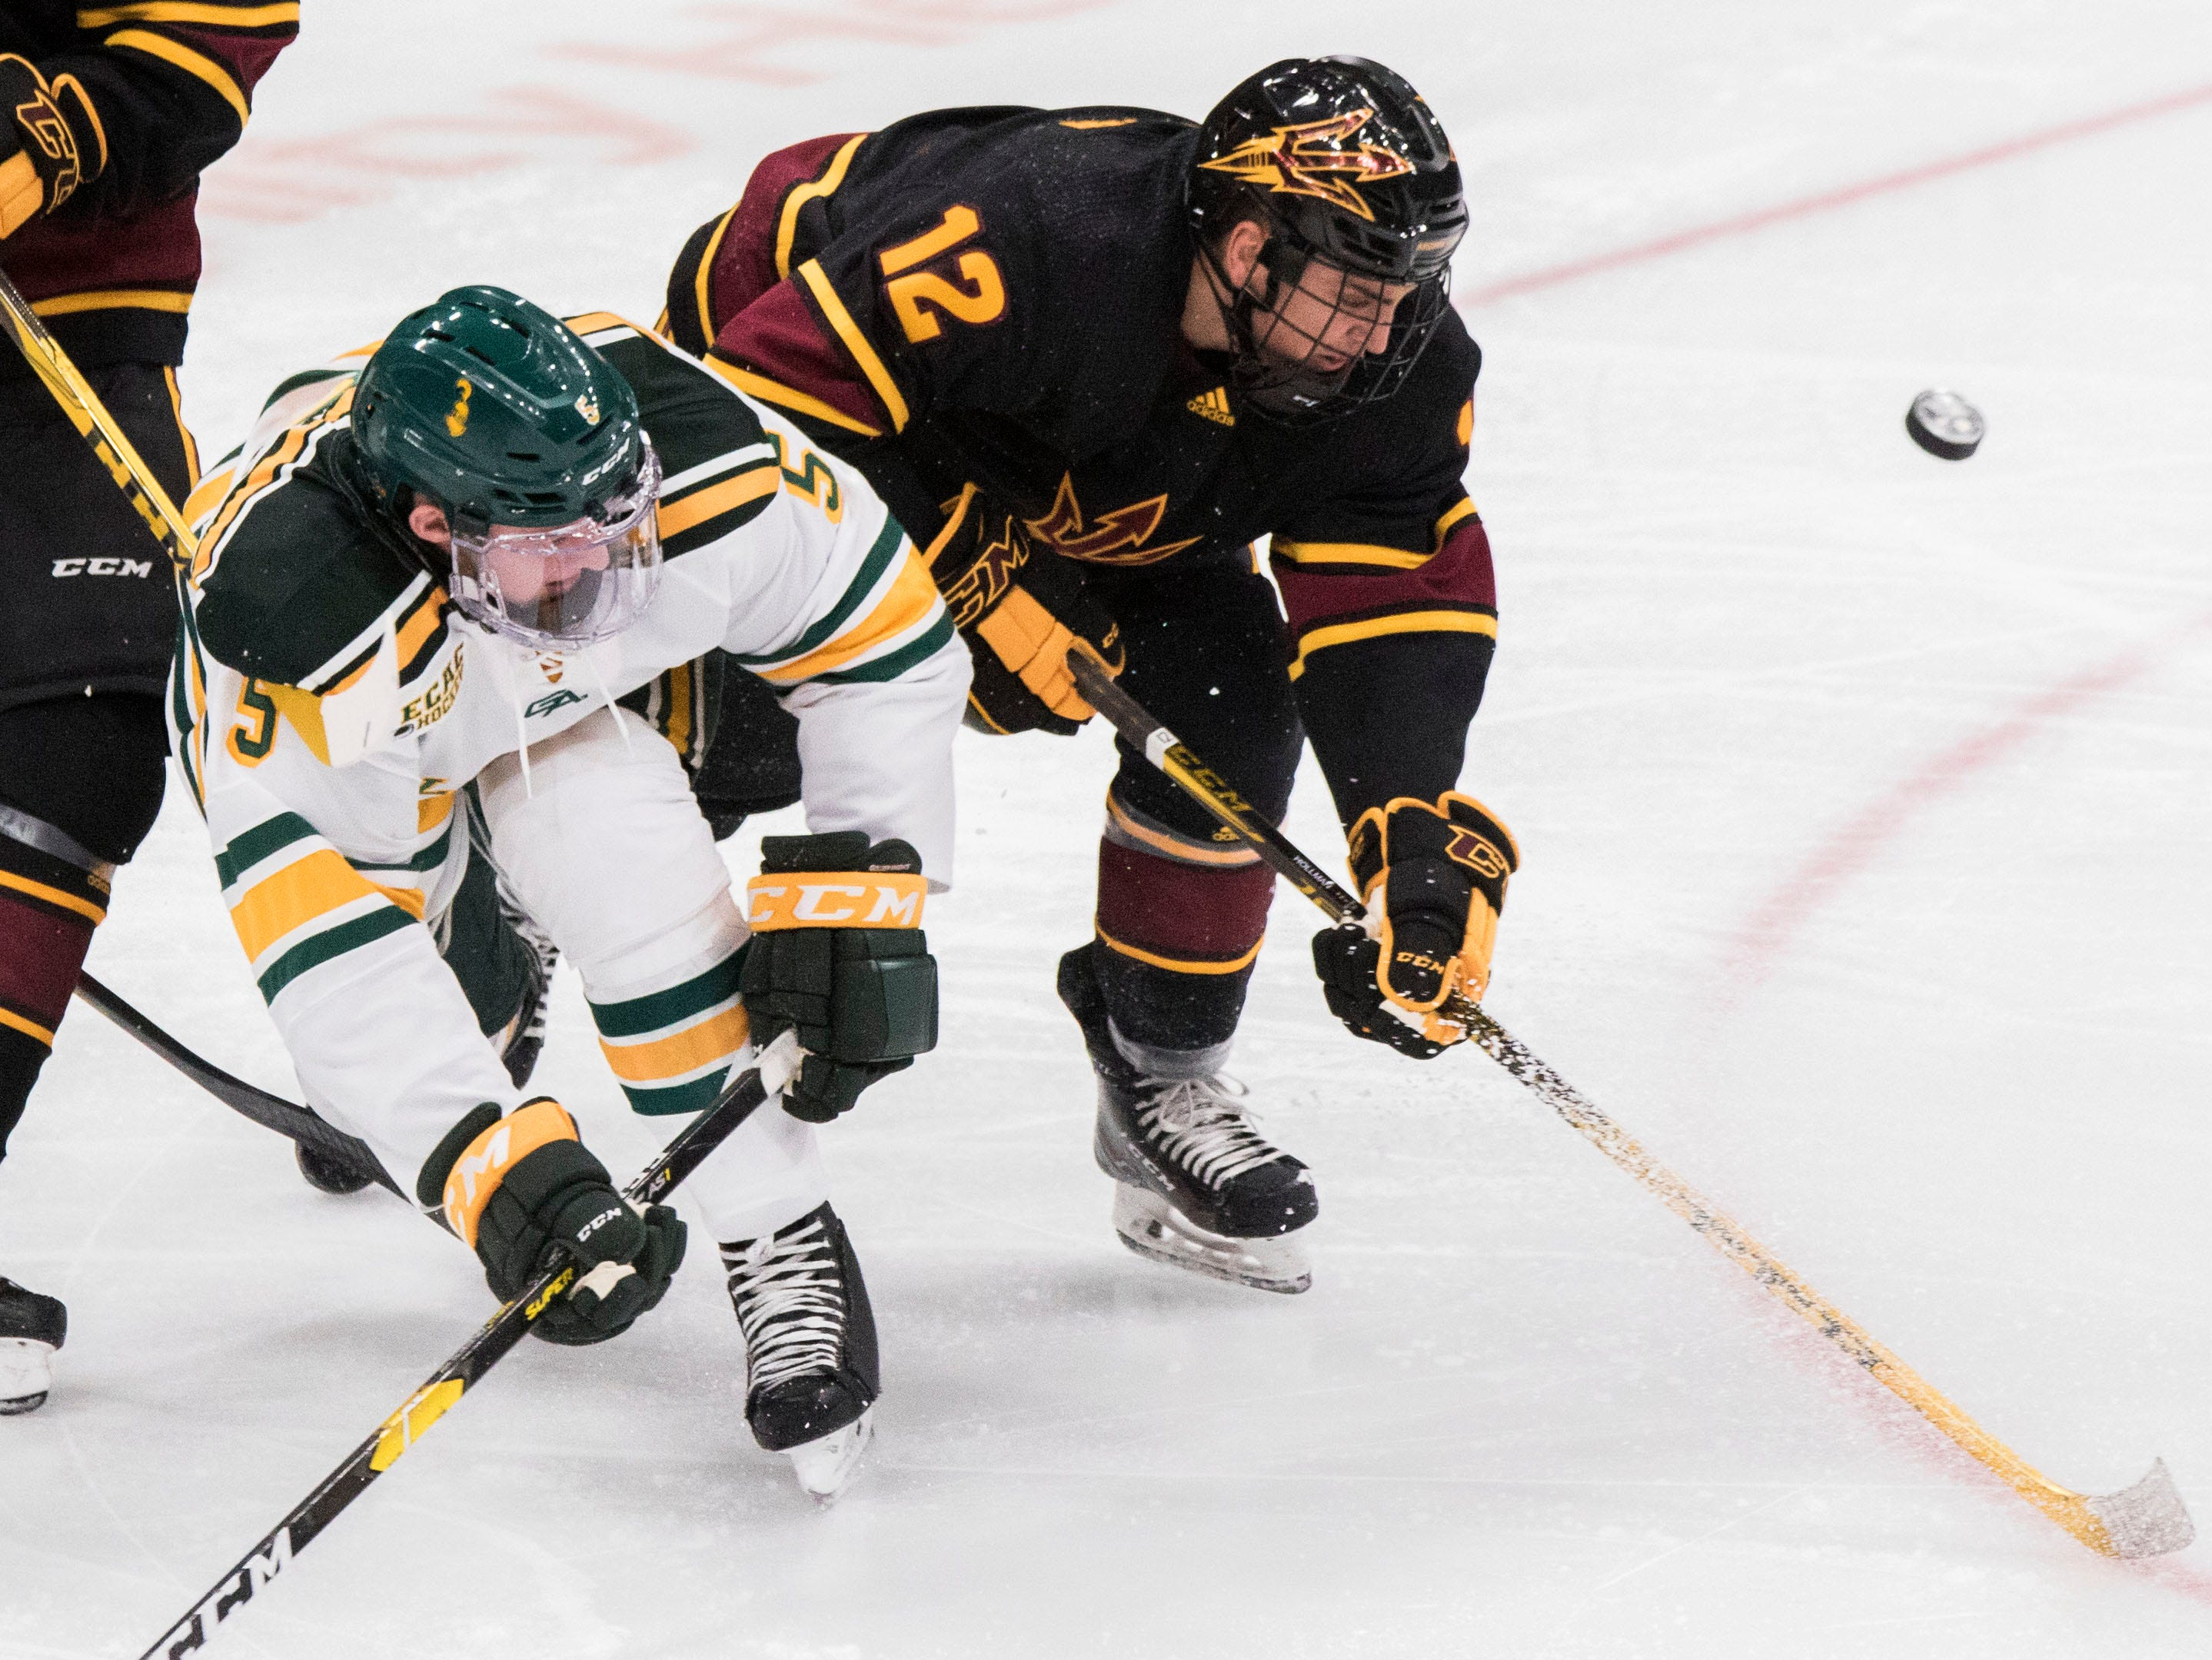 Arizona State University's Dylan Hollman (12) goes for the puck against Clarkson's Michael Underwood (5) during the first period of their game in the 2018 Desert Hockey Classic in Glendale, Friday, Dec. 28, 2018.